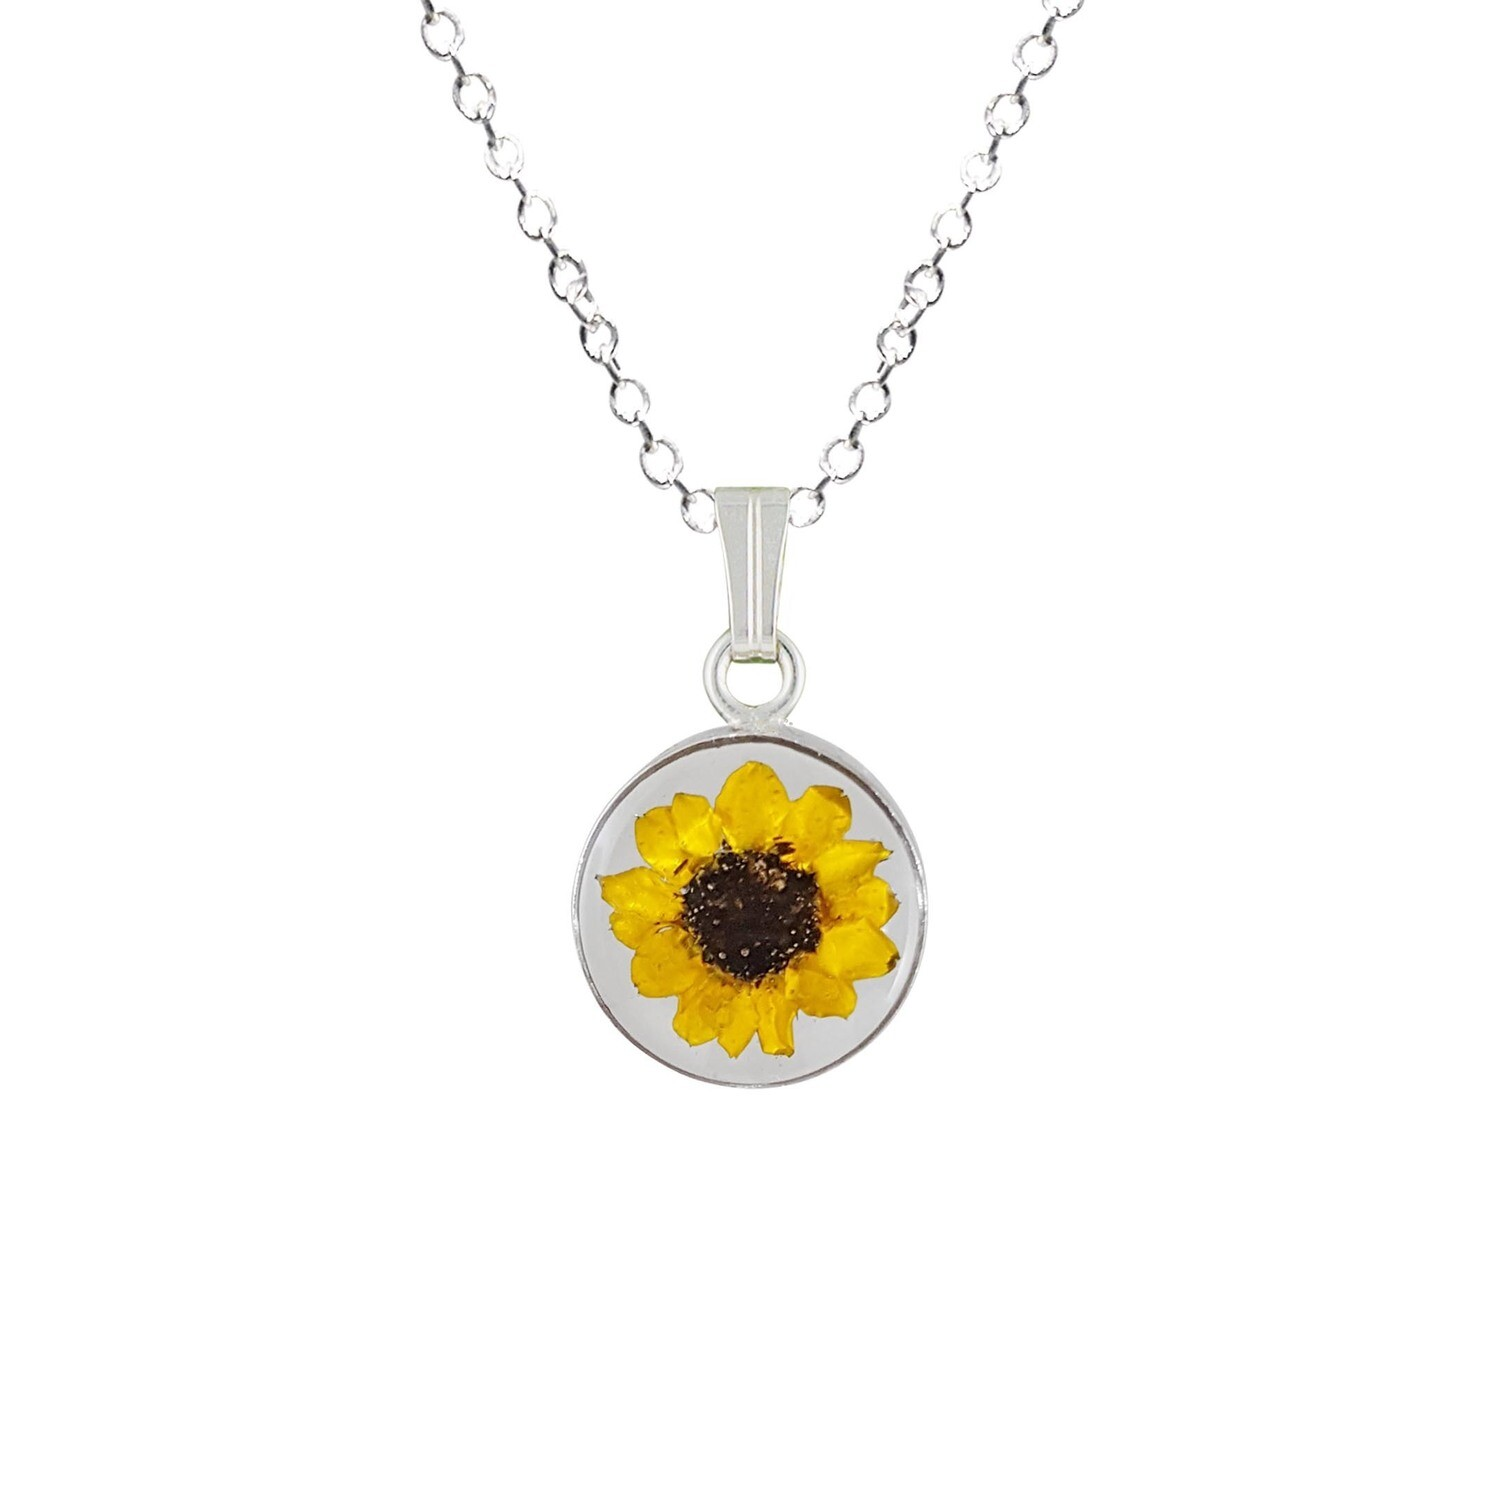 Sunflower Necklace, Small Circle, Transparent